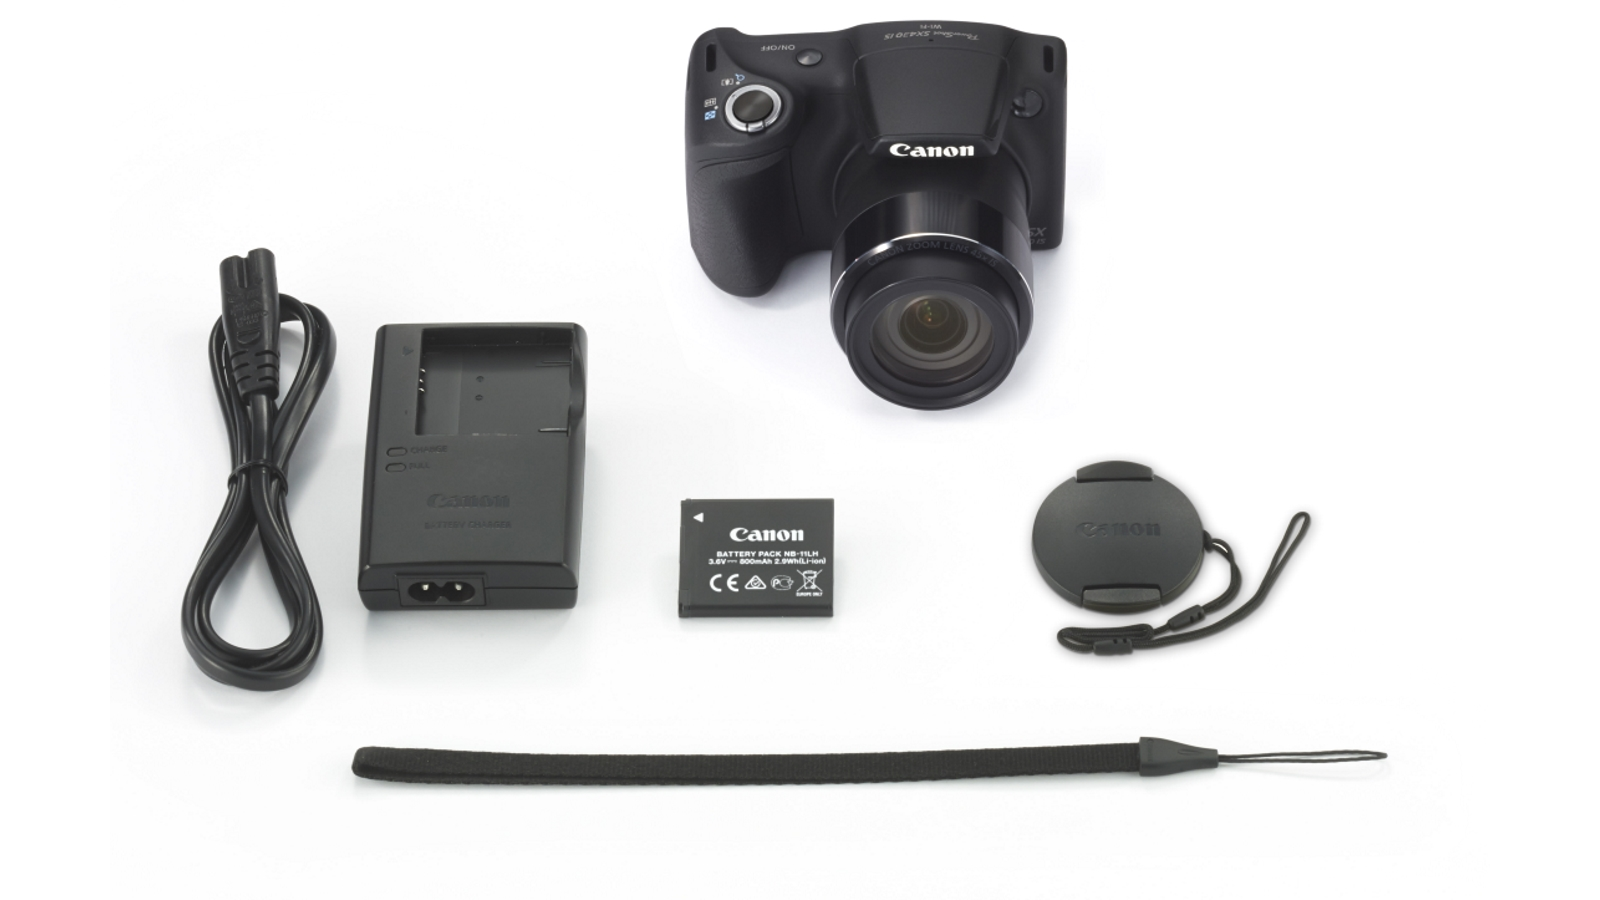 Hot Deals: Canon Powershot SX430 IS Digital Camera | Harvey Norman AU